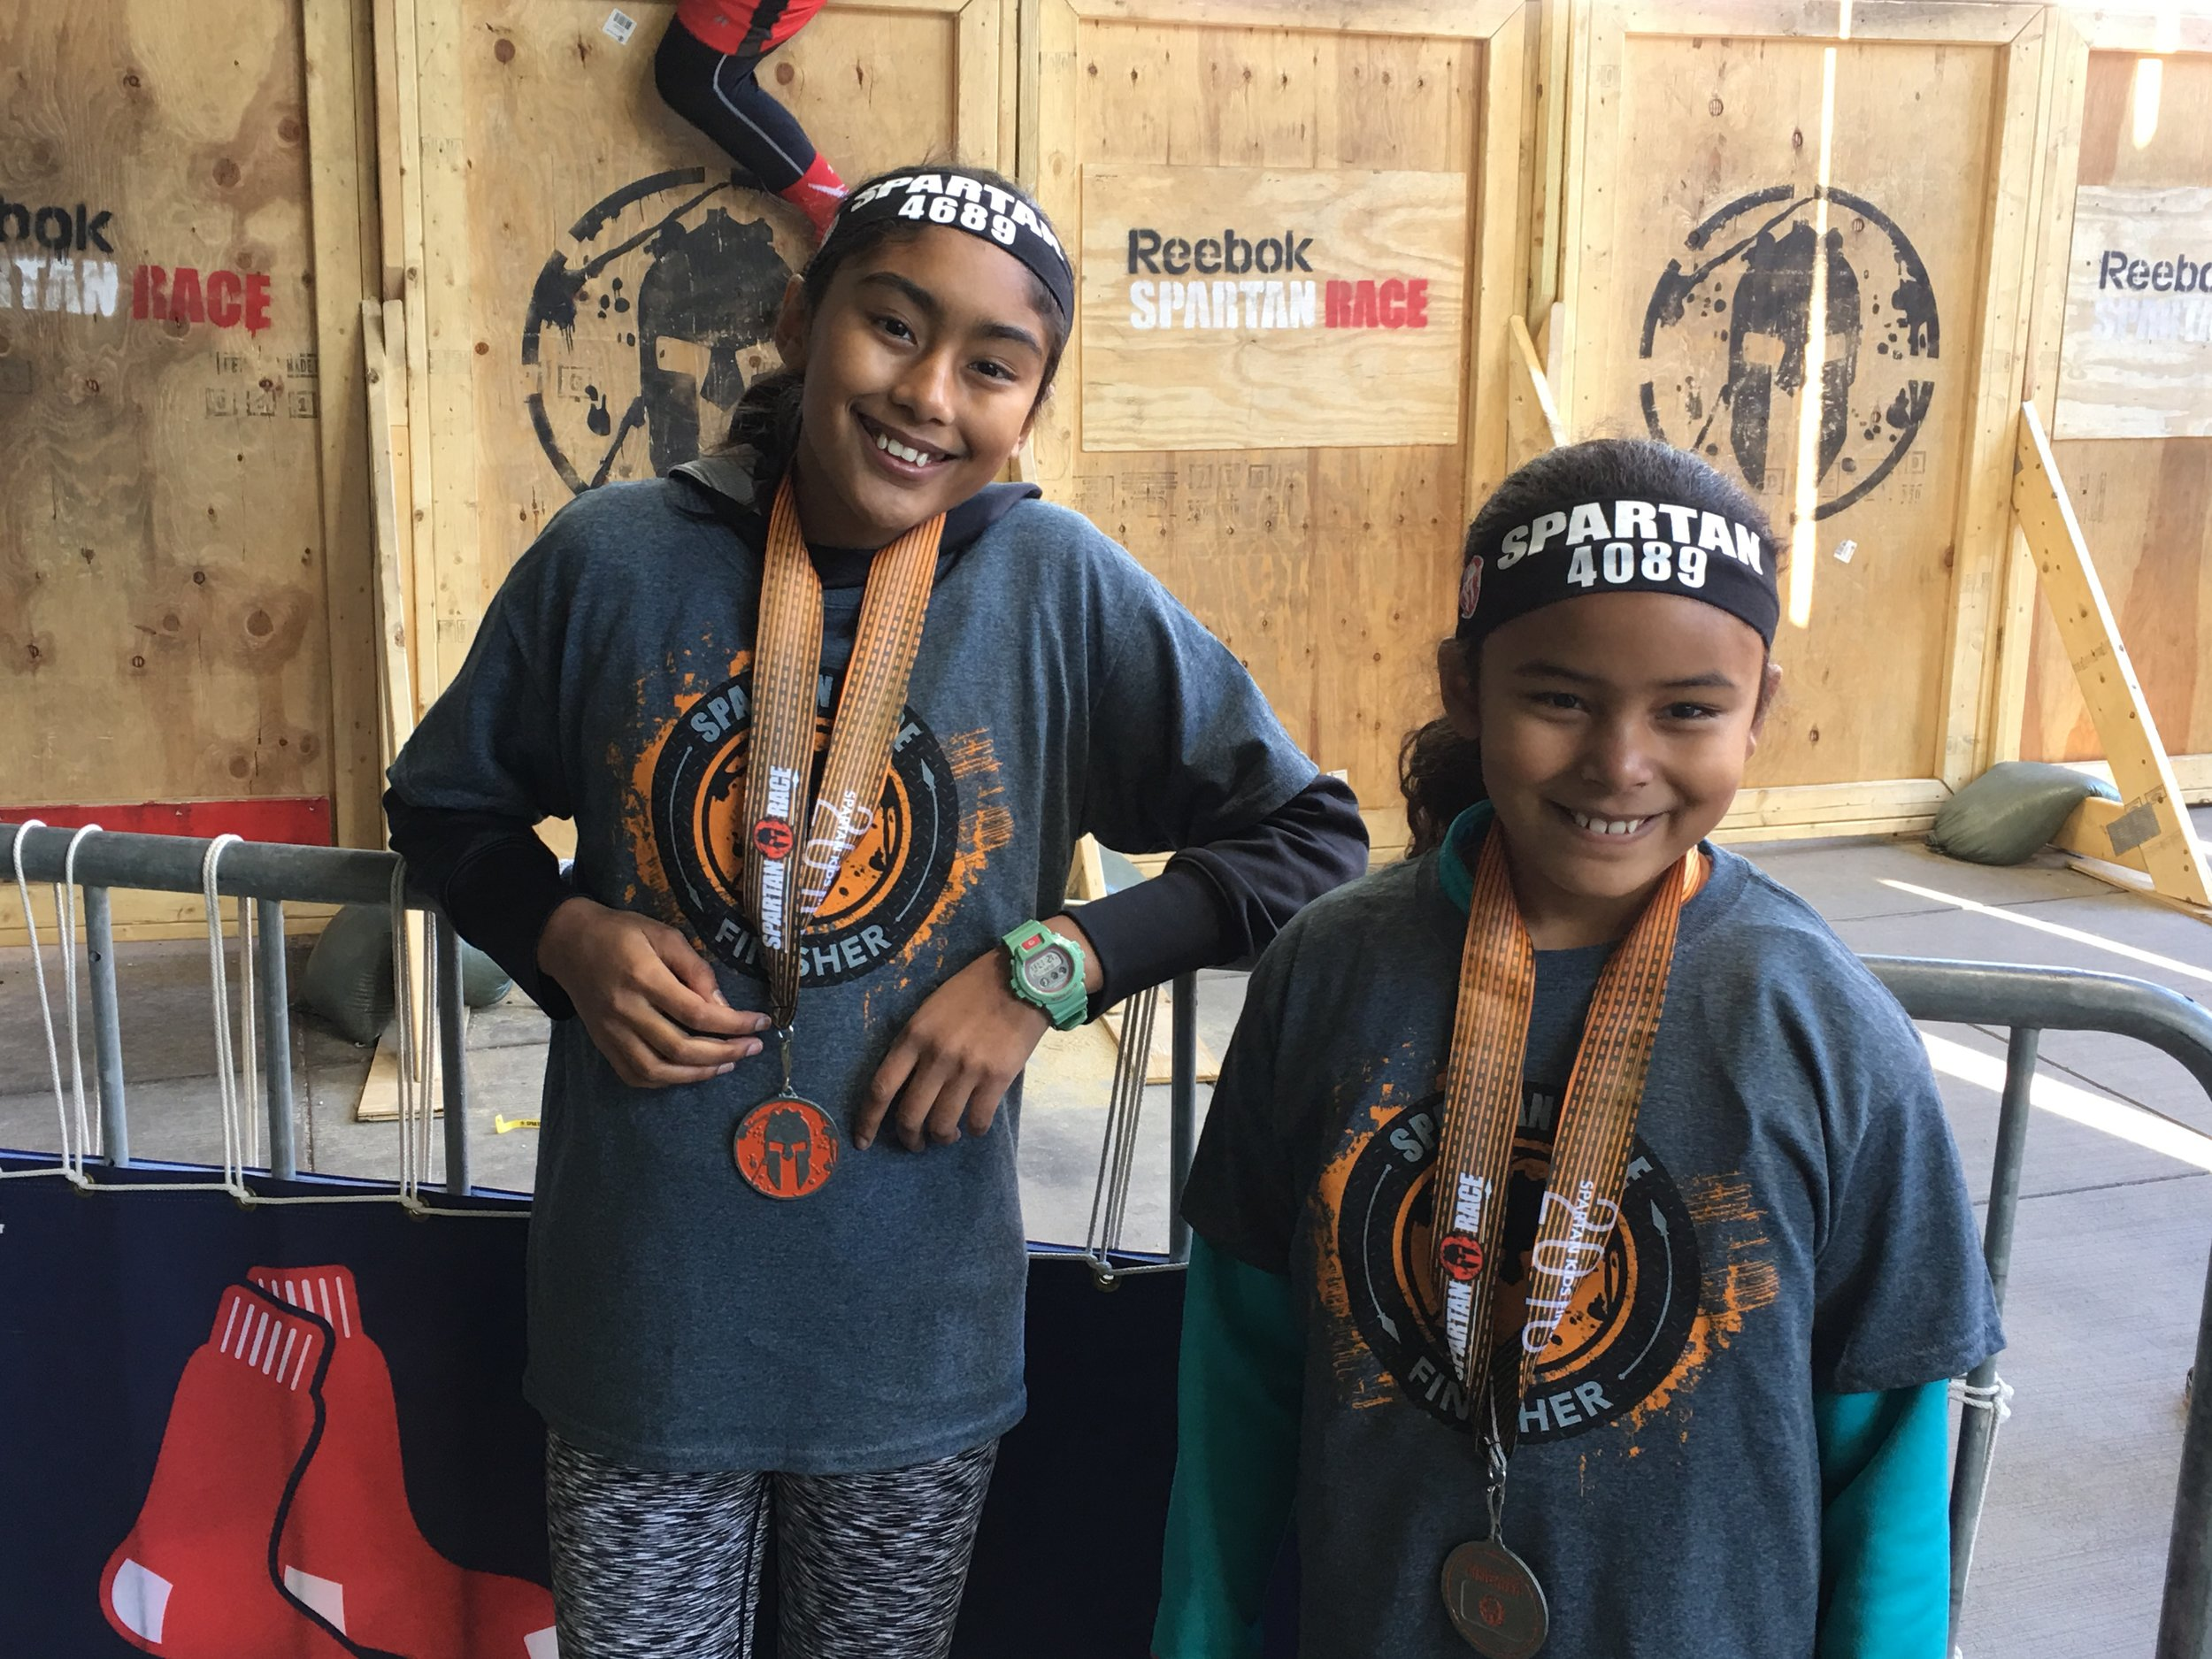 Reimagine Play Team members proud of their finish at the 2016 Spartan Kids Fenway Race